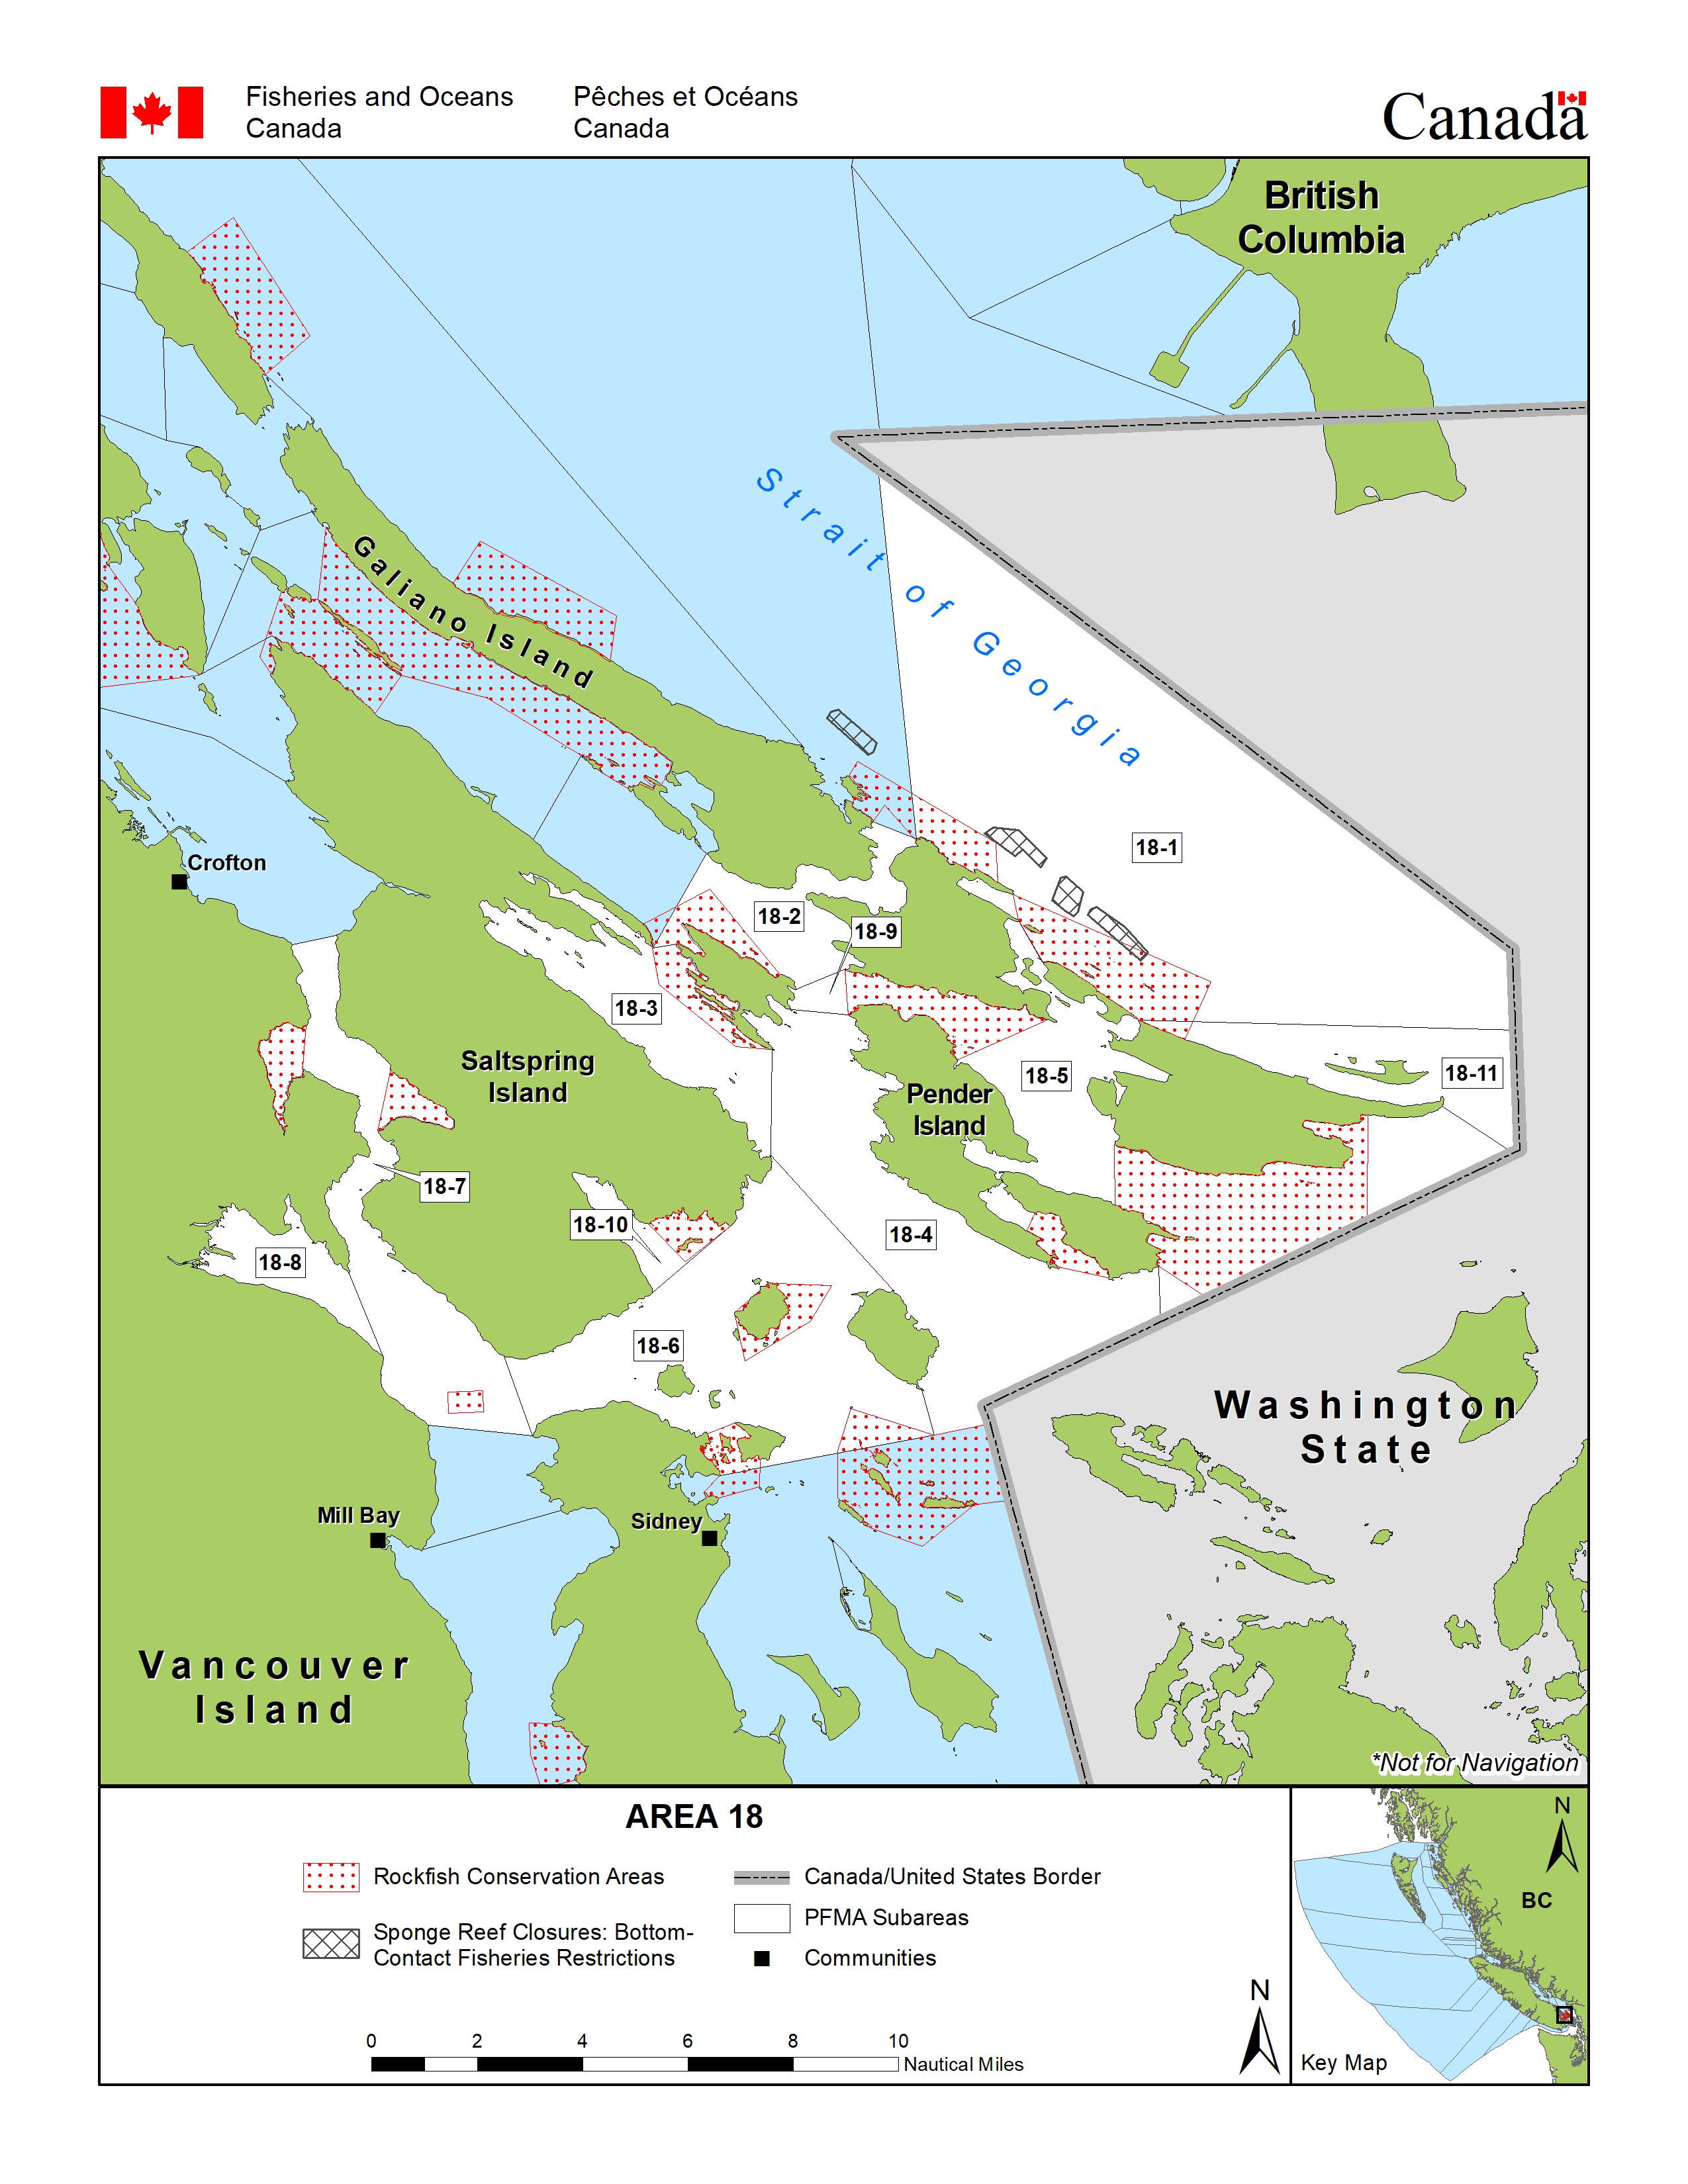 Area 18 (Saltspring, Pender, Mayne and Saturna Islands, and